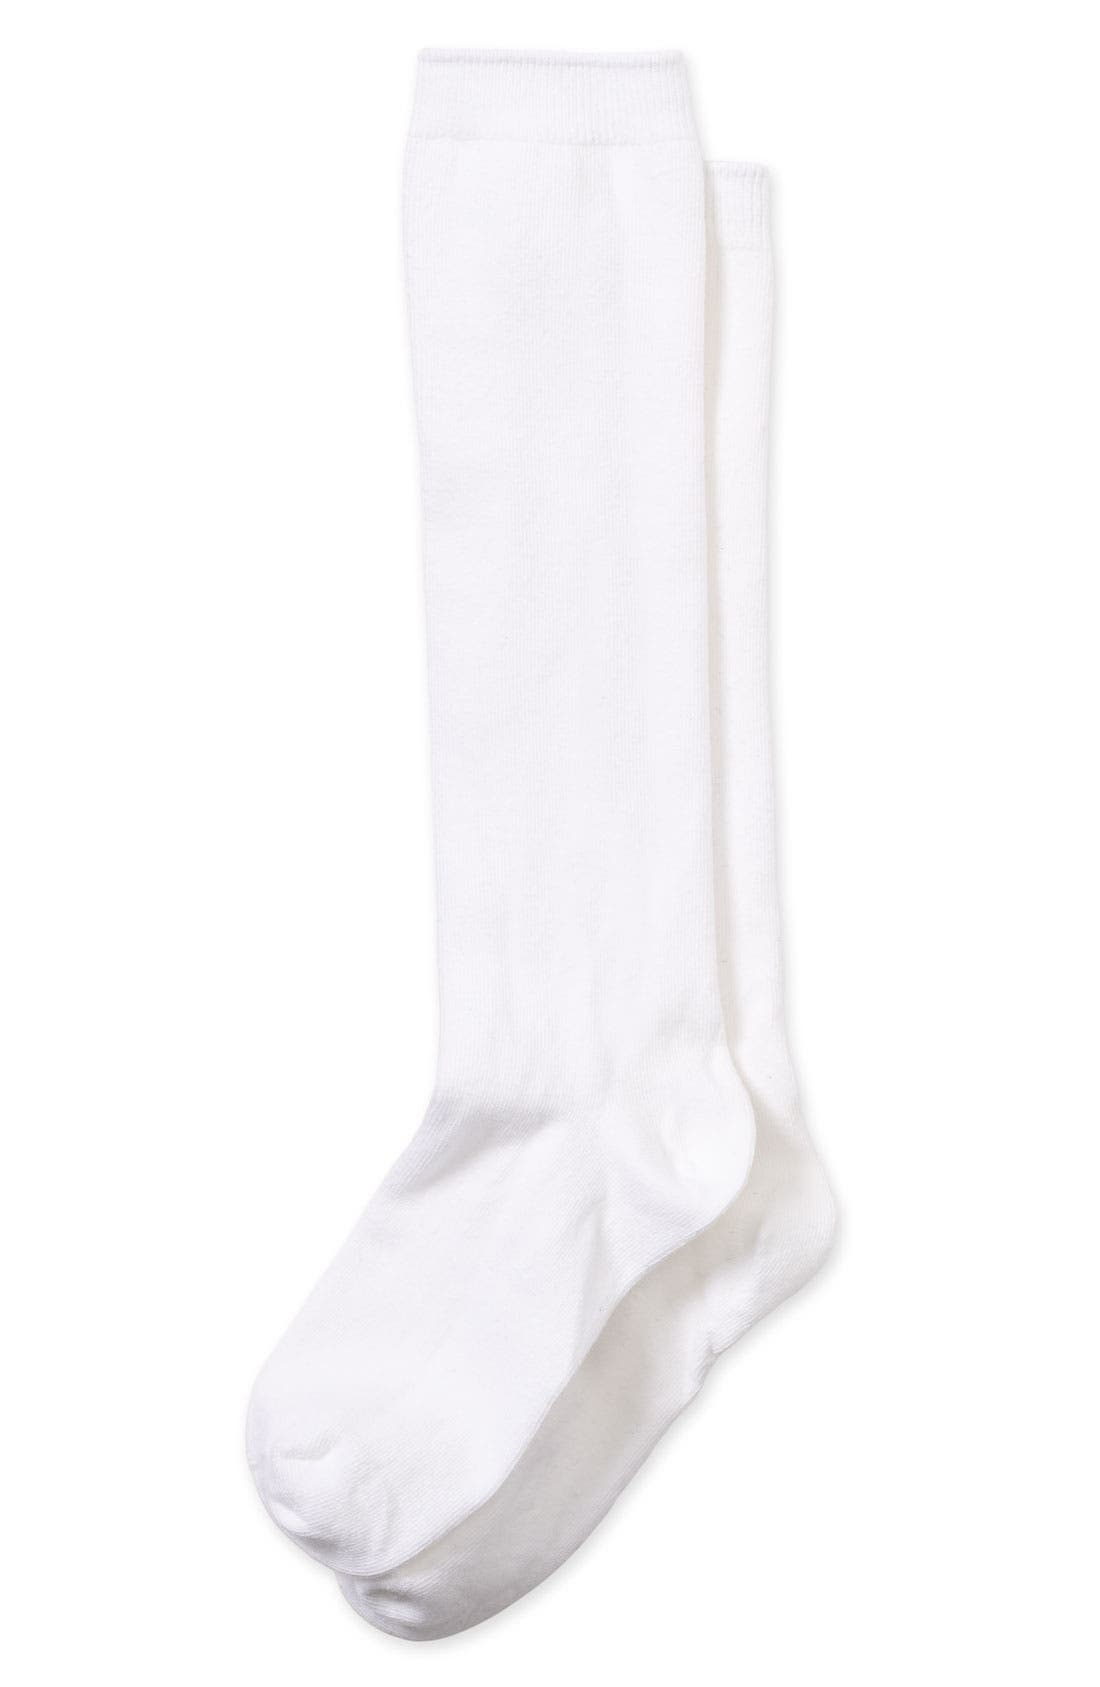 Main Image - Nordstrom Knee High Socks (Little Girls & Big Girls)